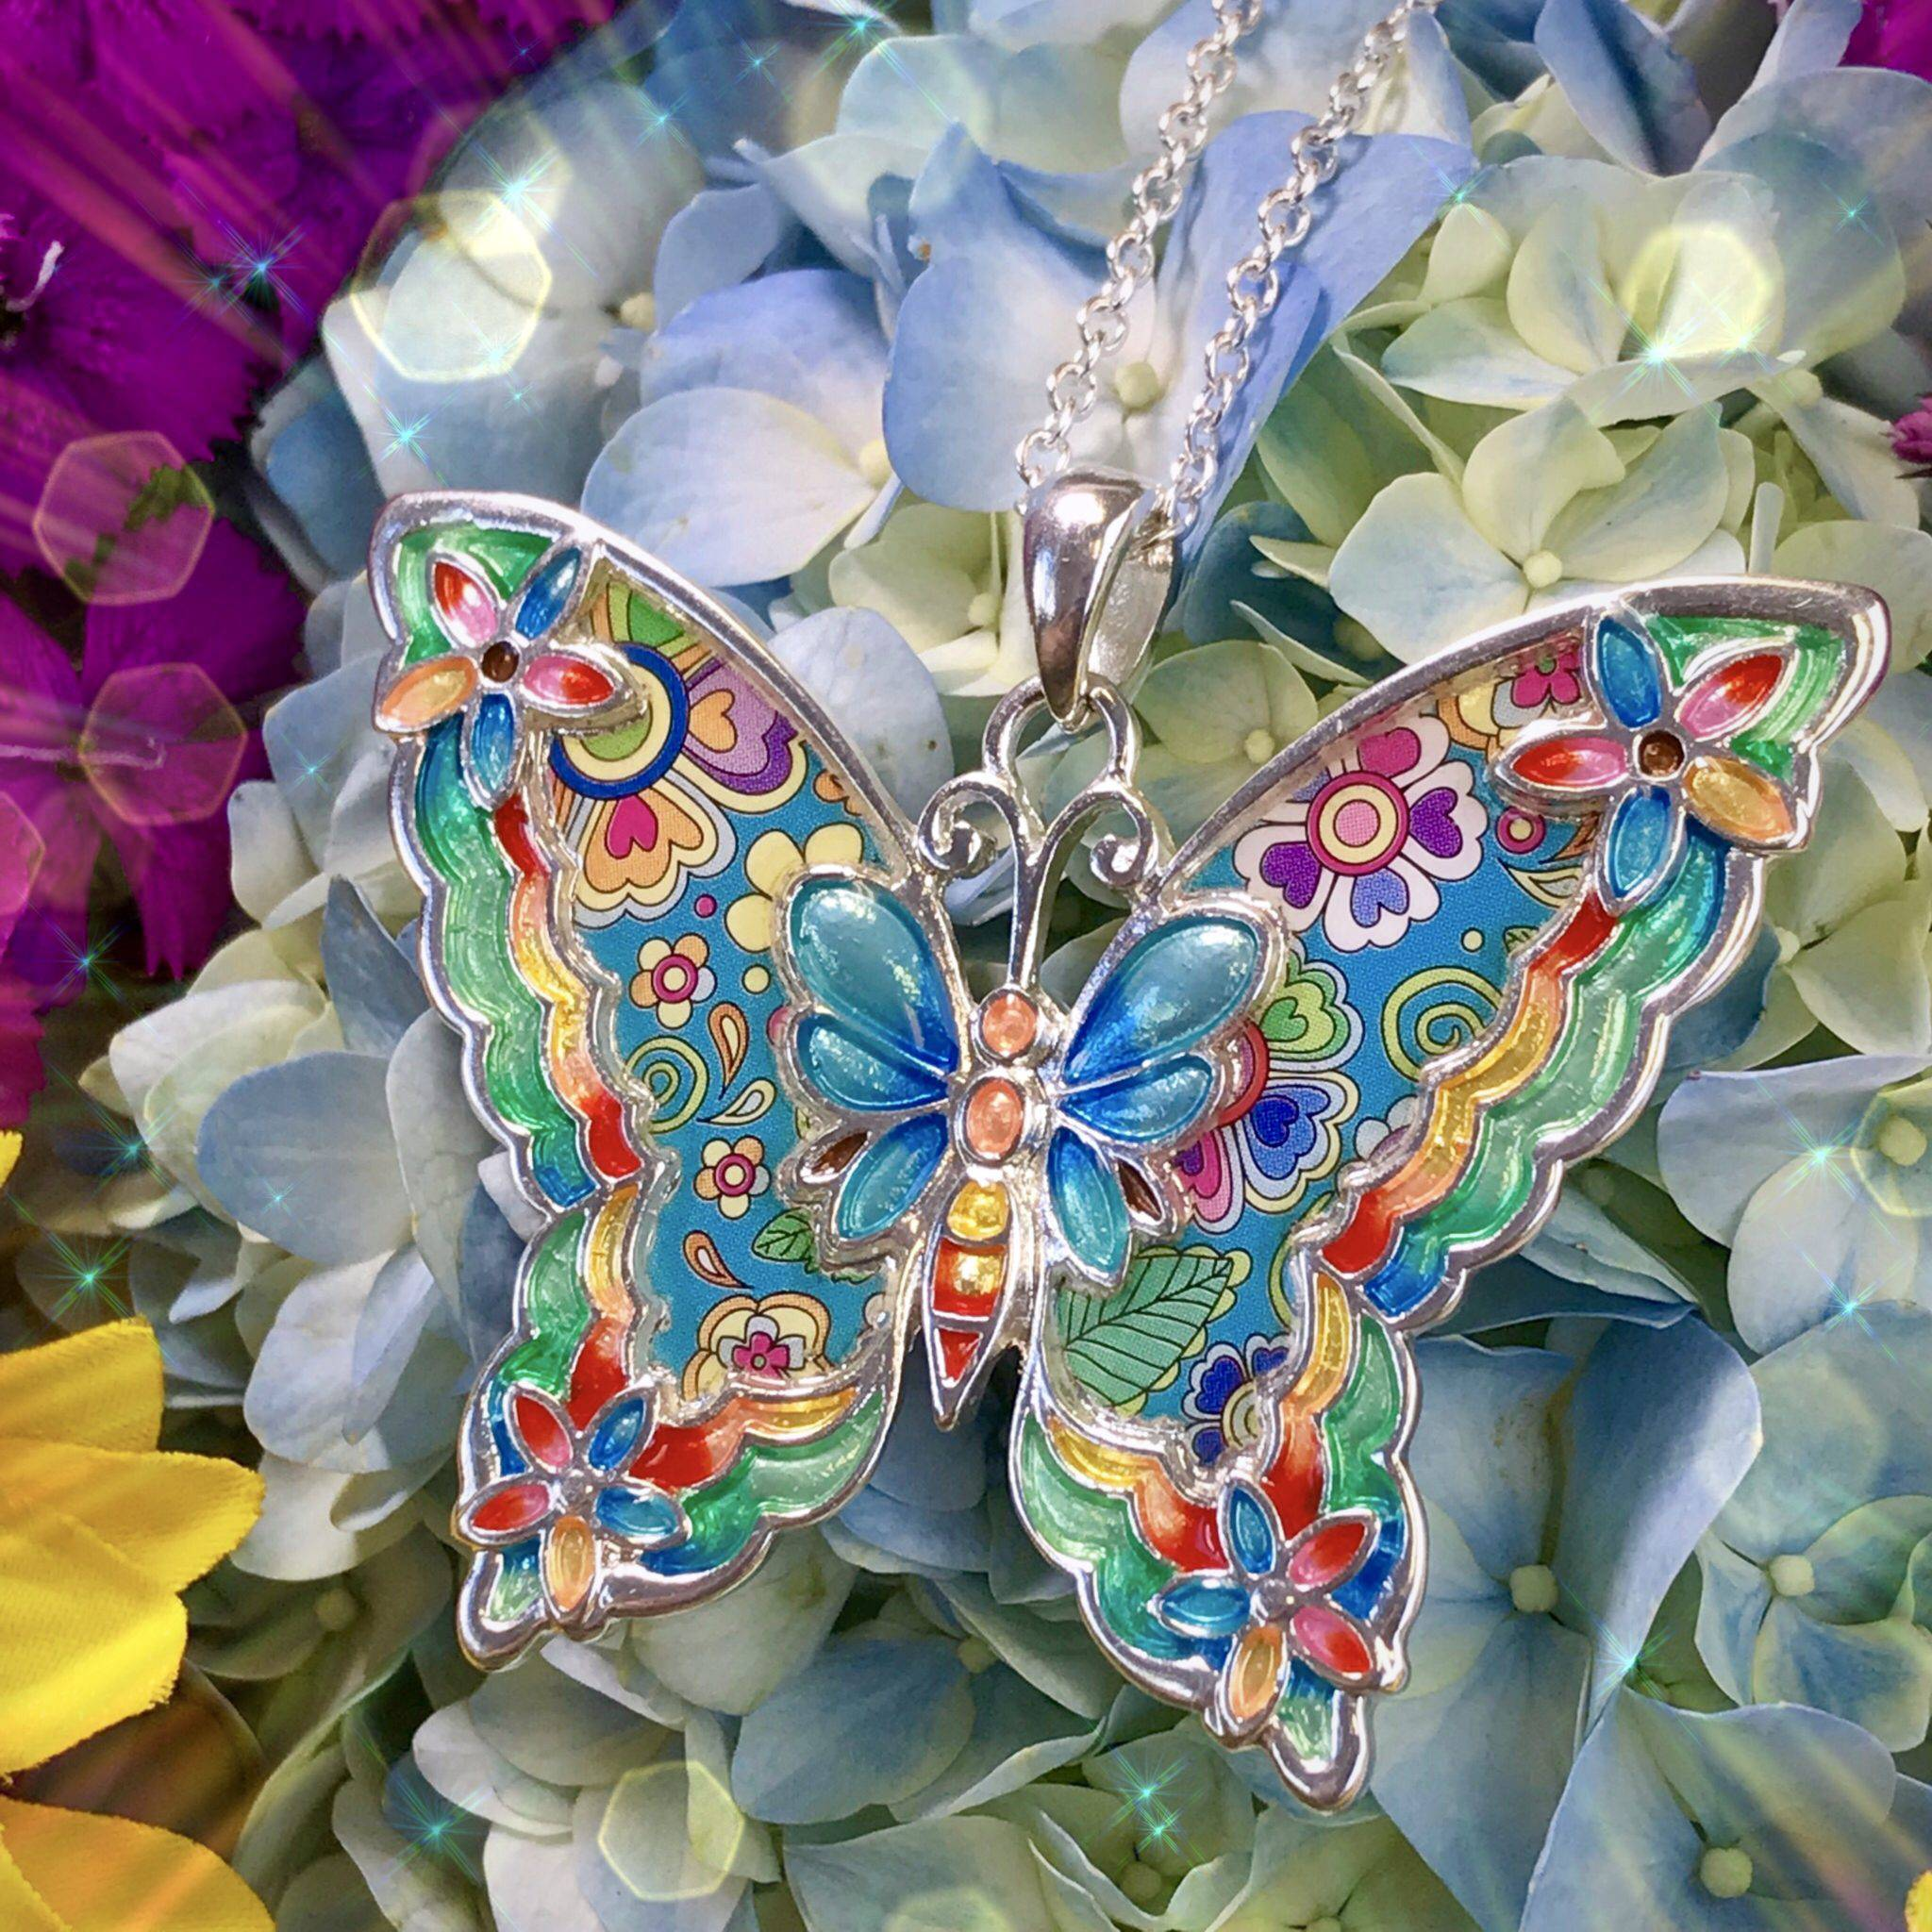 Series A. Number 2 of 5 Necklace and Bracelet Butterfly of Transformation